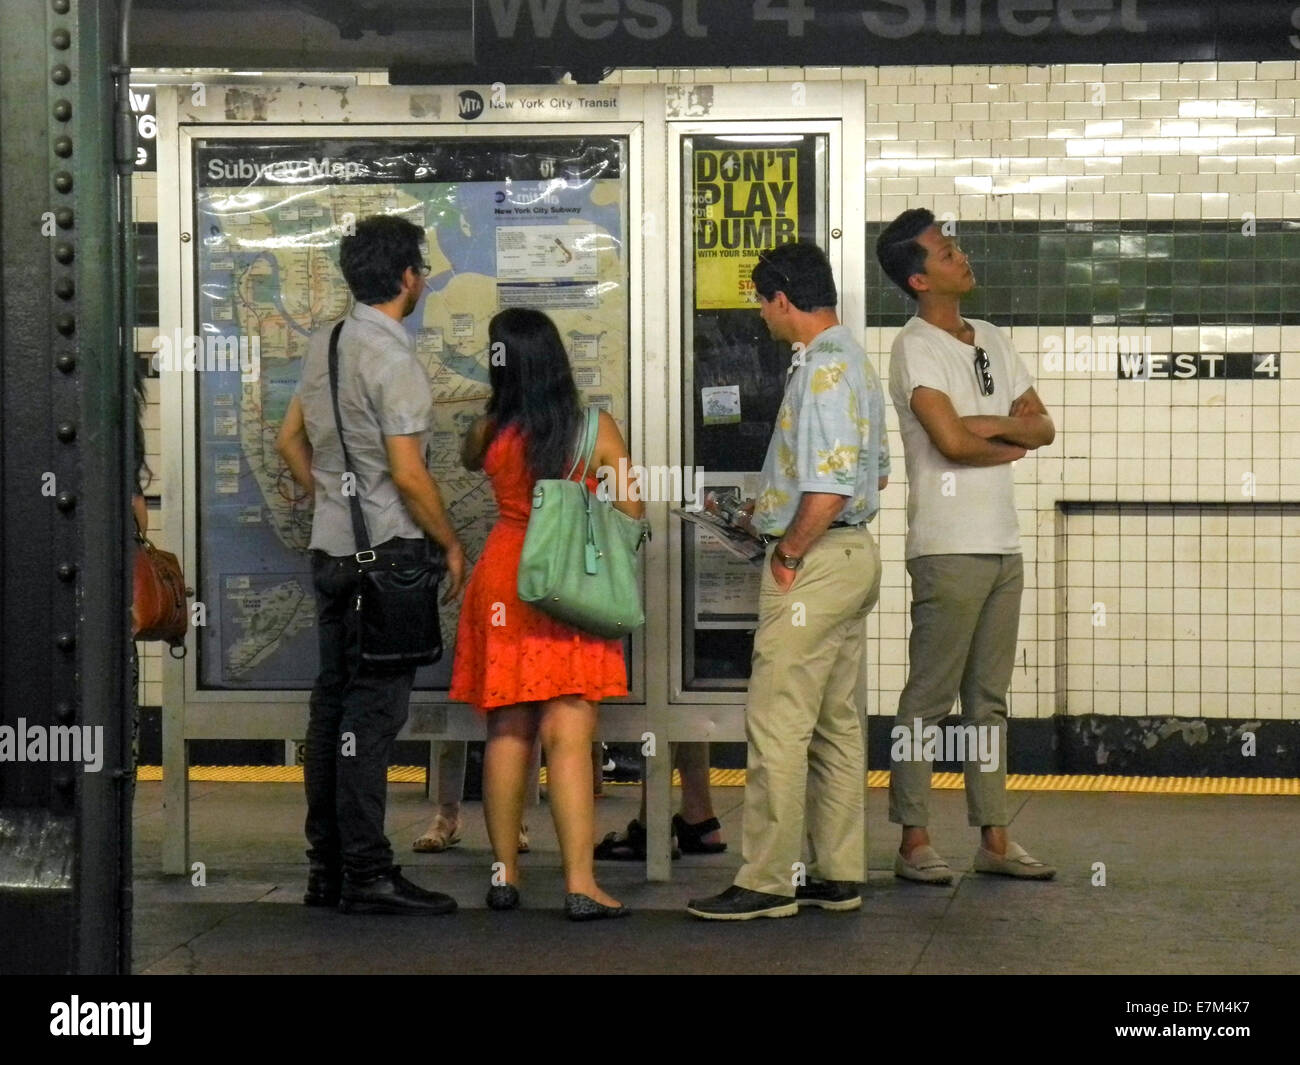 Ny Street And Subway Map.Asian American Tourists In New York City Read A Subway Map At West